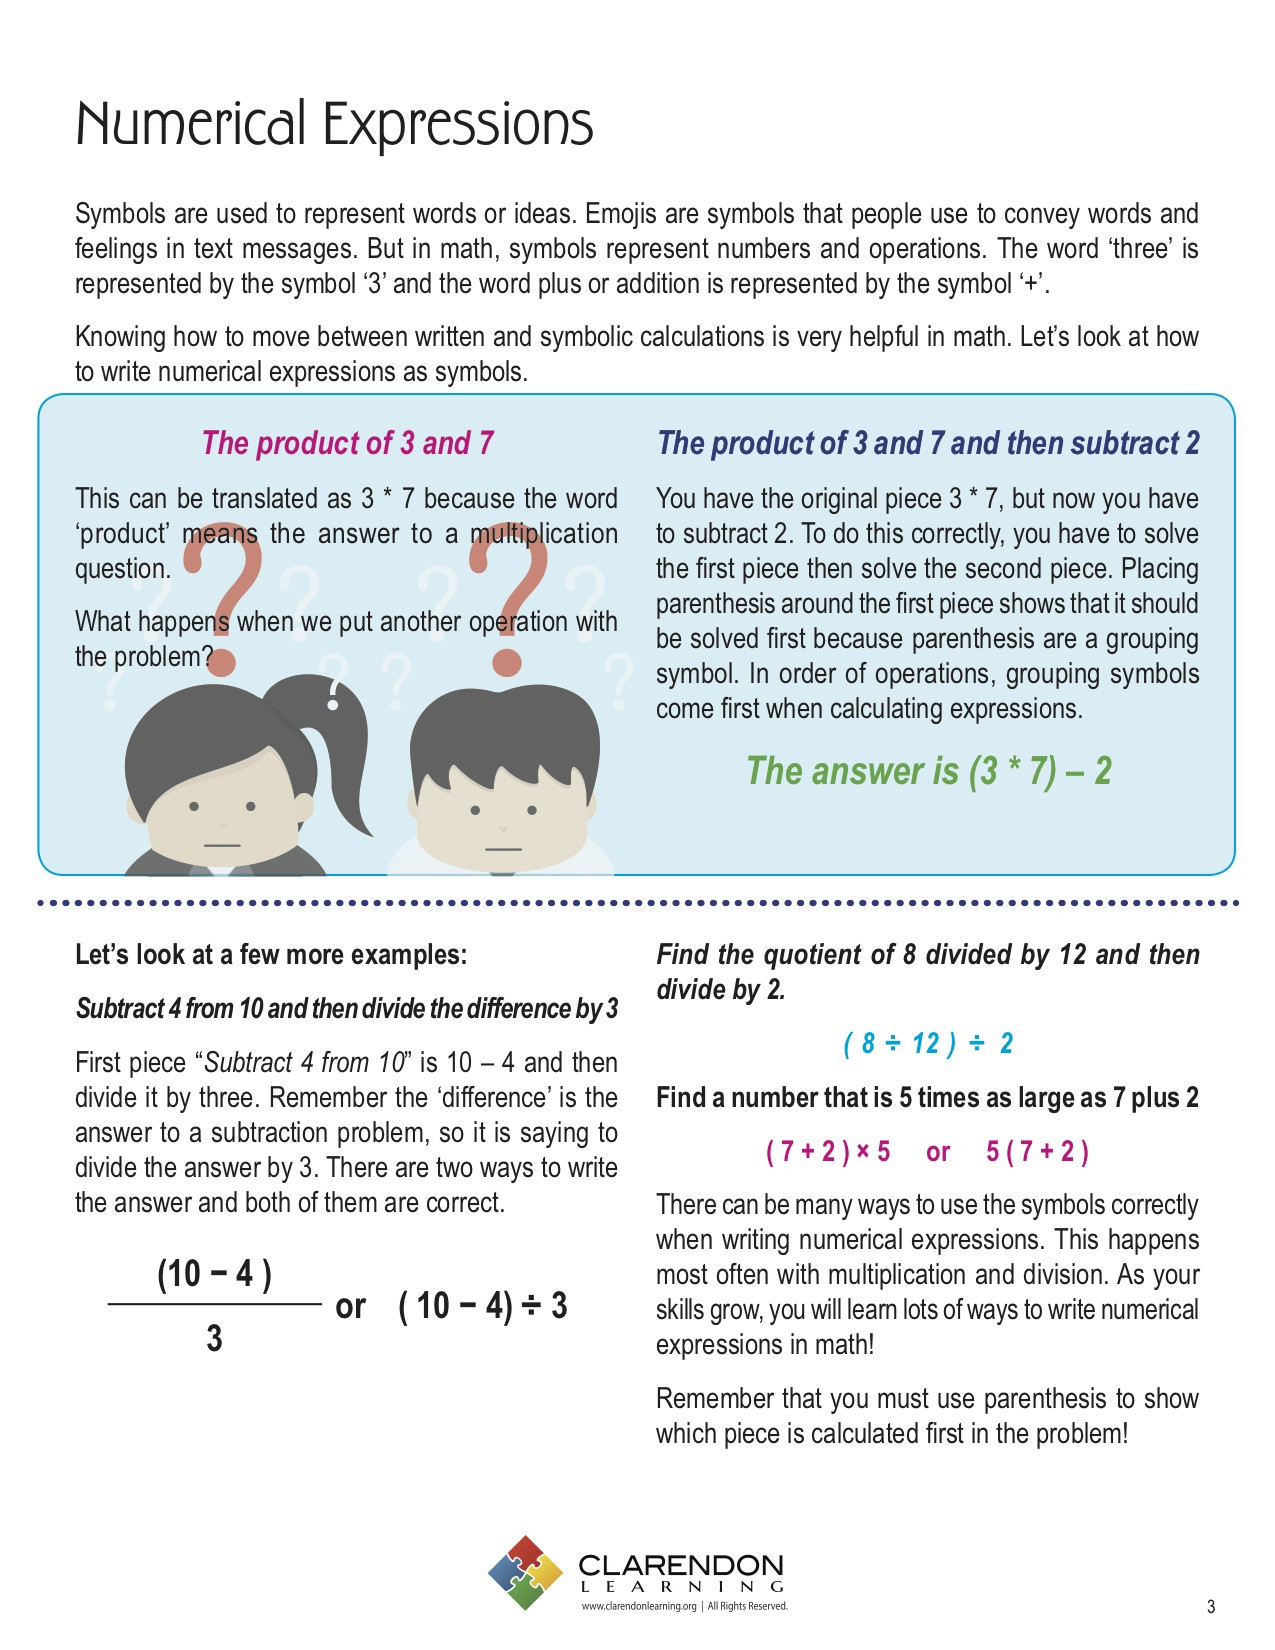 Writing Numerical Expressions Worksheet Numerical Expressions Lesson Plan